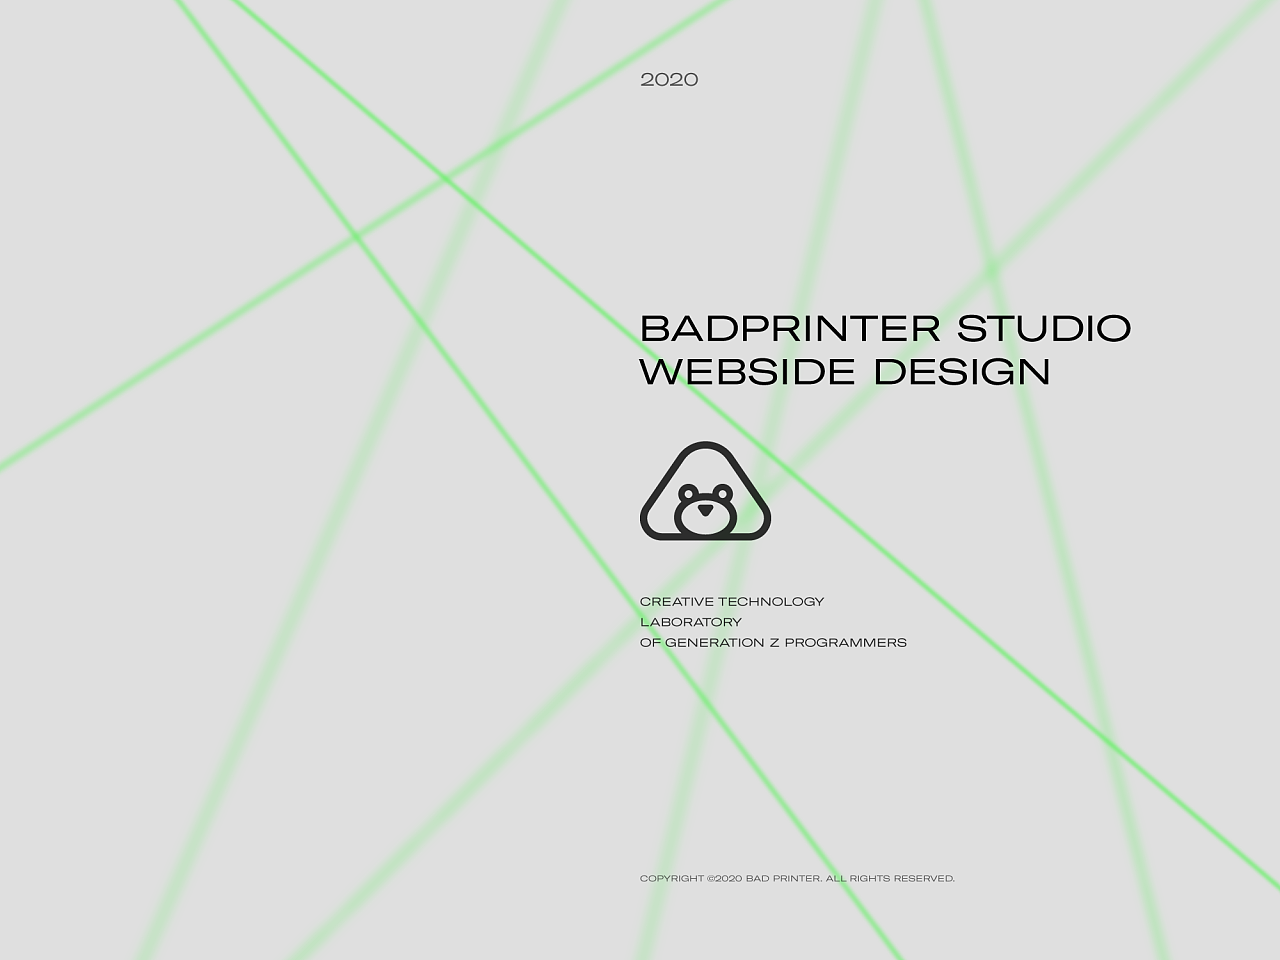 坏打印机 Studio 官网|BadPrinter Studio Website